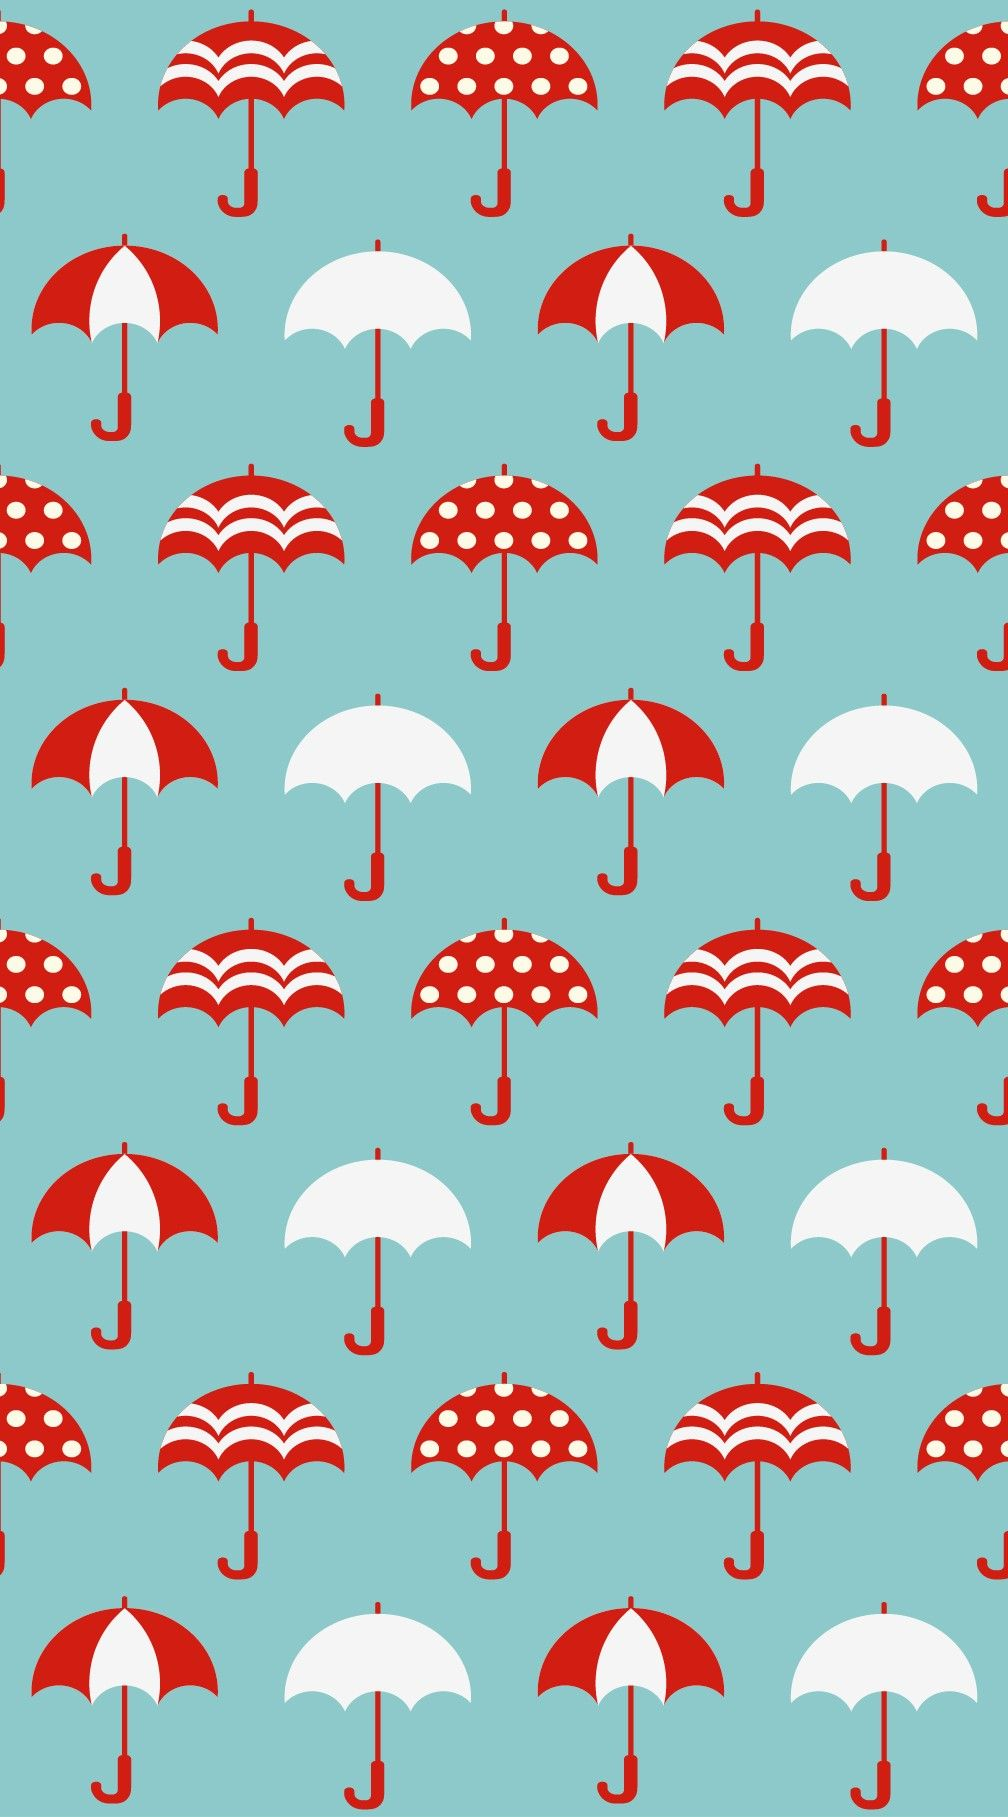 Under My Umbrella Find More Funky Patterns For Your IPhone Android